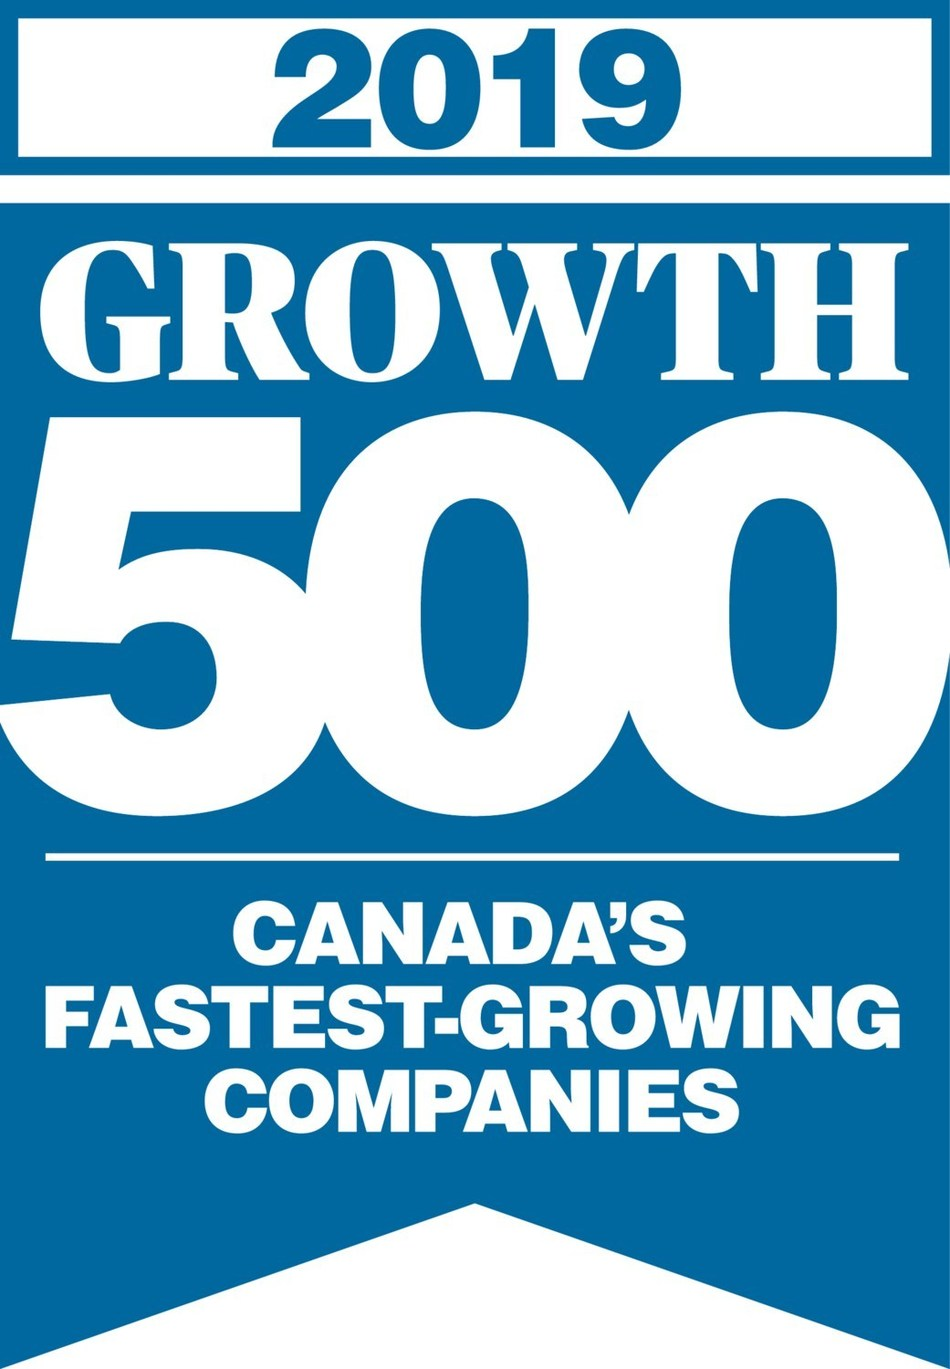 Growth 500 2019 (CNW Group/Equium Group)